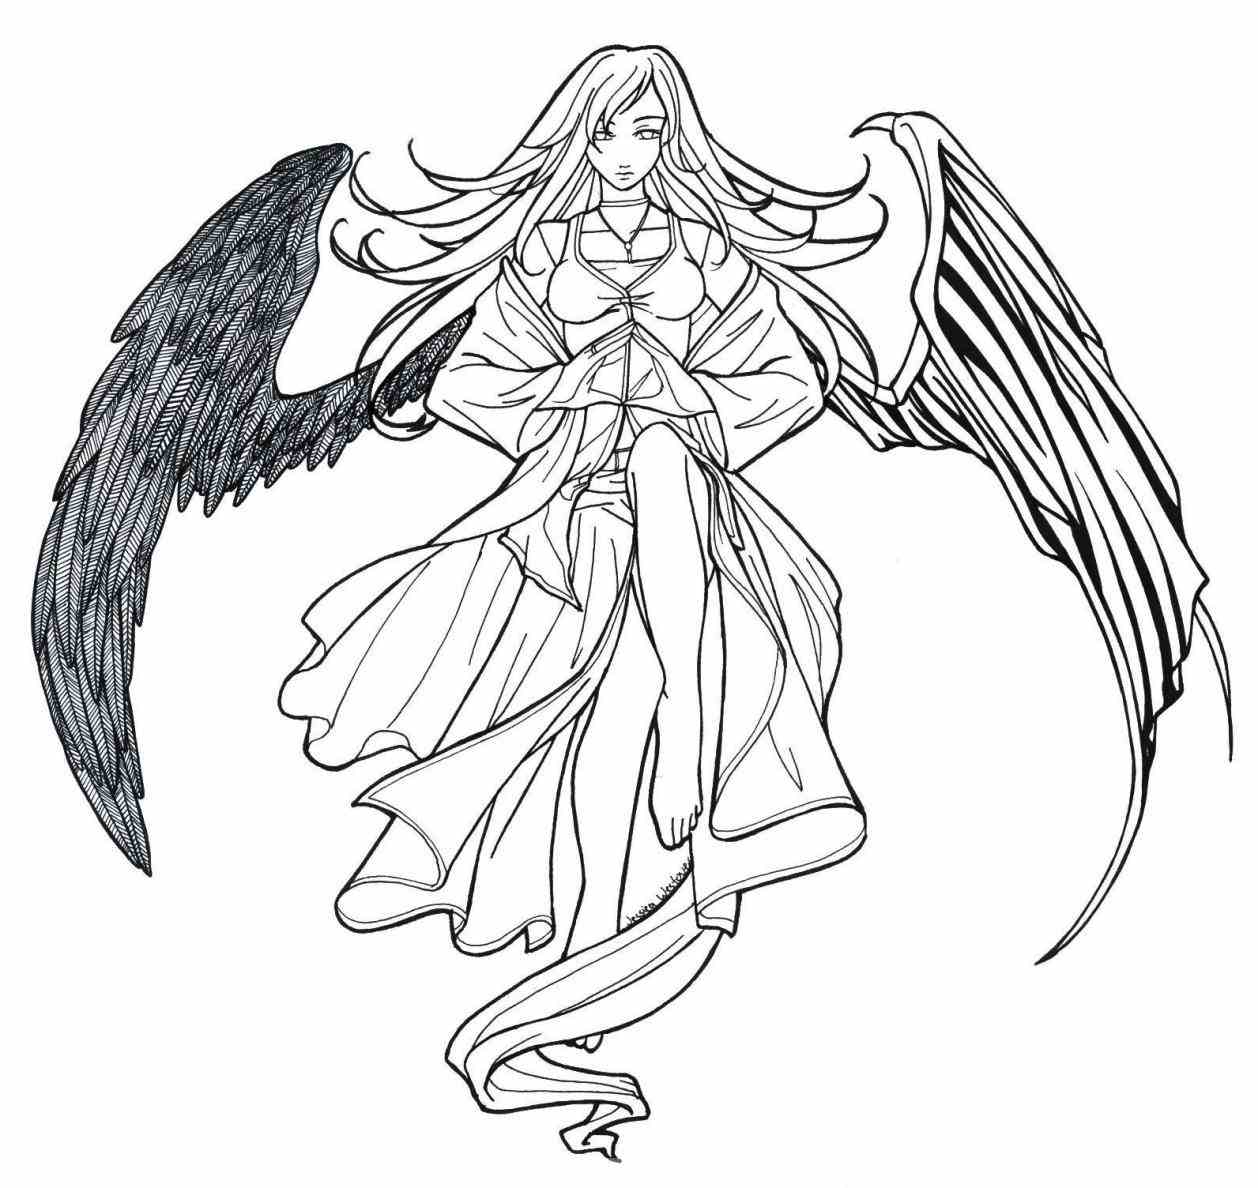 1258x1188 Dark Angel Anime Drawings Death S Drawing Ideas For The Images